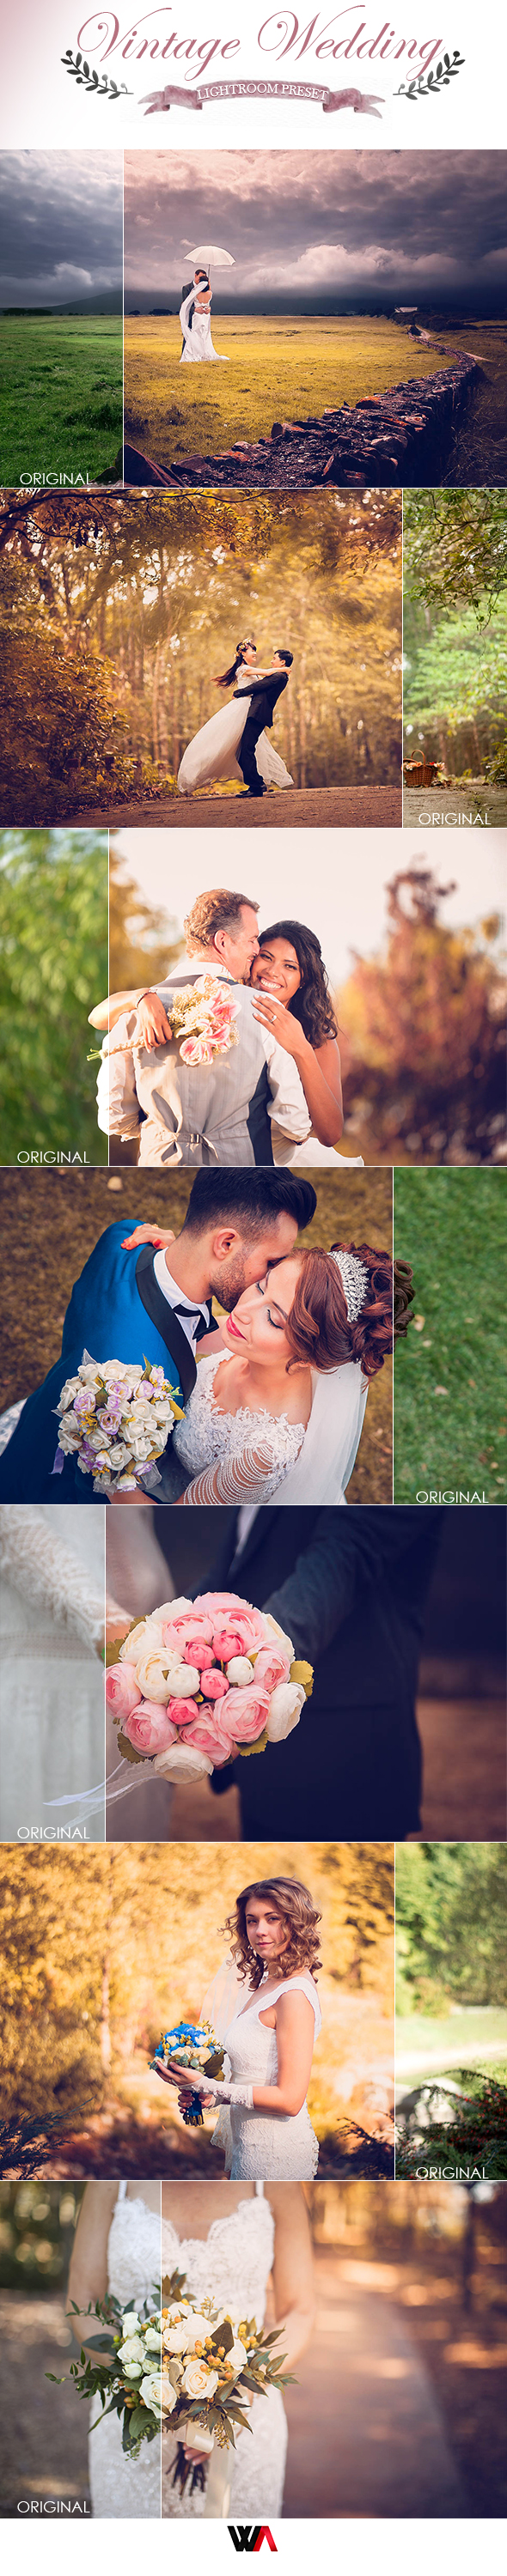 Wedding Vintage Lightroom Preset - Wedding Lightroom Presets